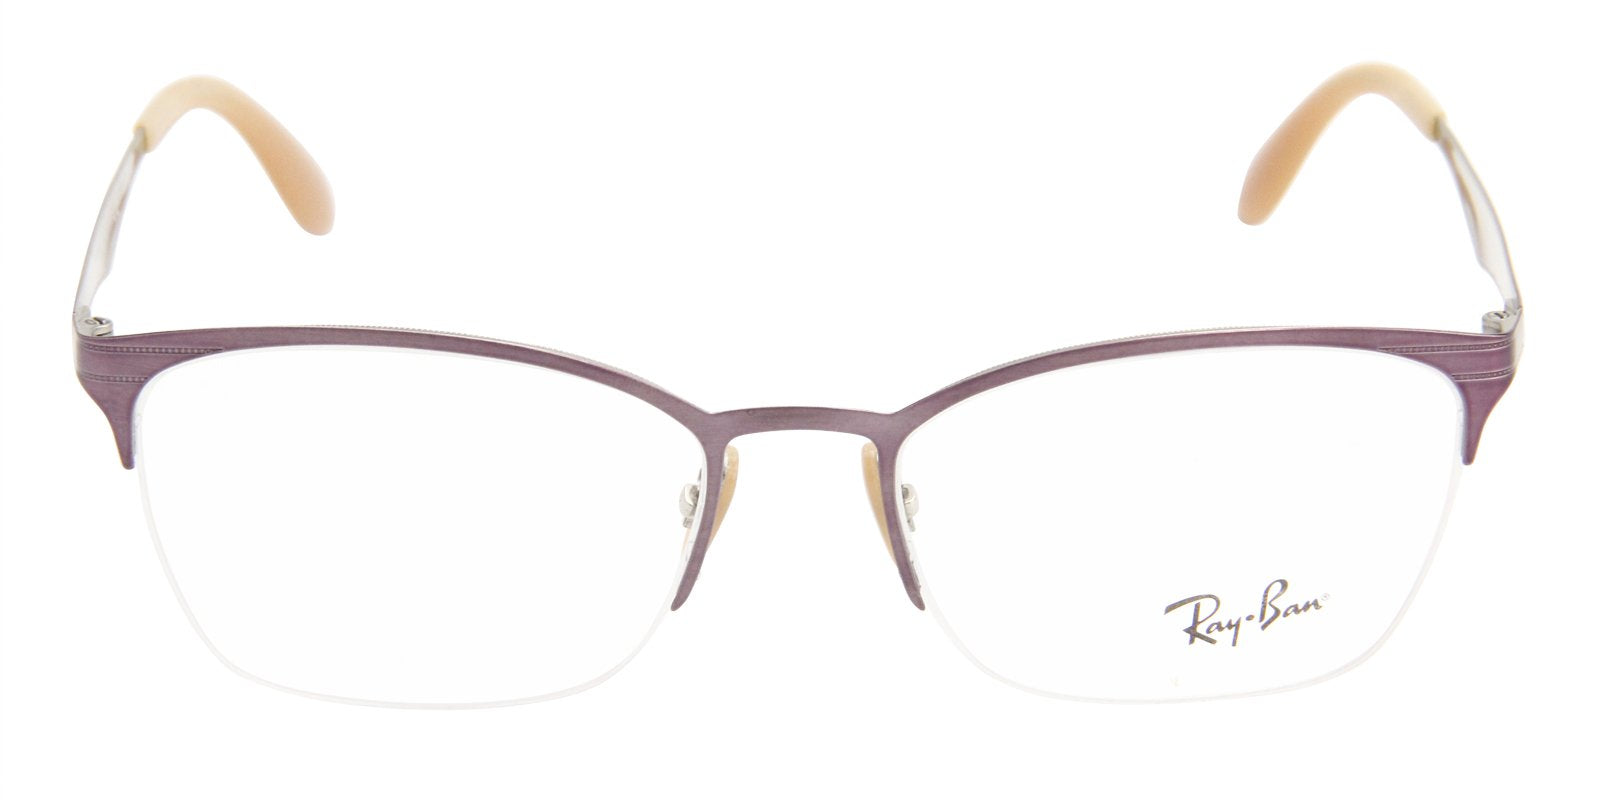 Ray Ban Rx - RX6345 Pink Semi-Rimless Women Eyeglasses - 52mm-Eyeglasses-Designer Eyes